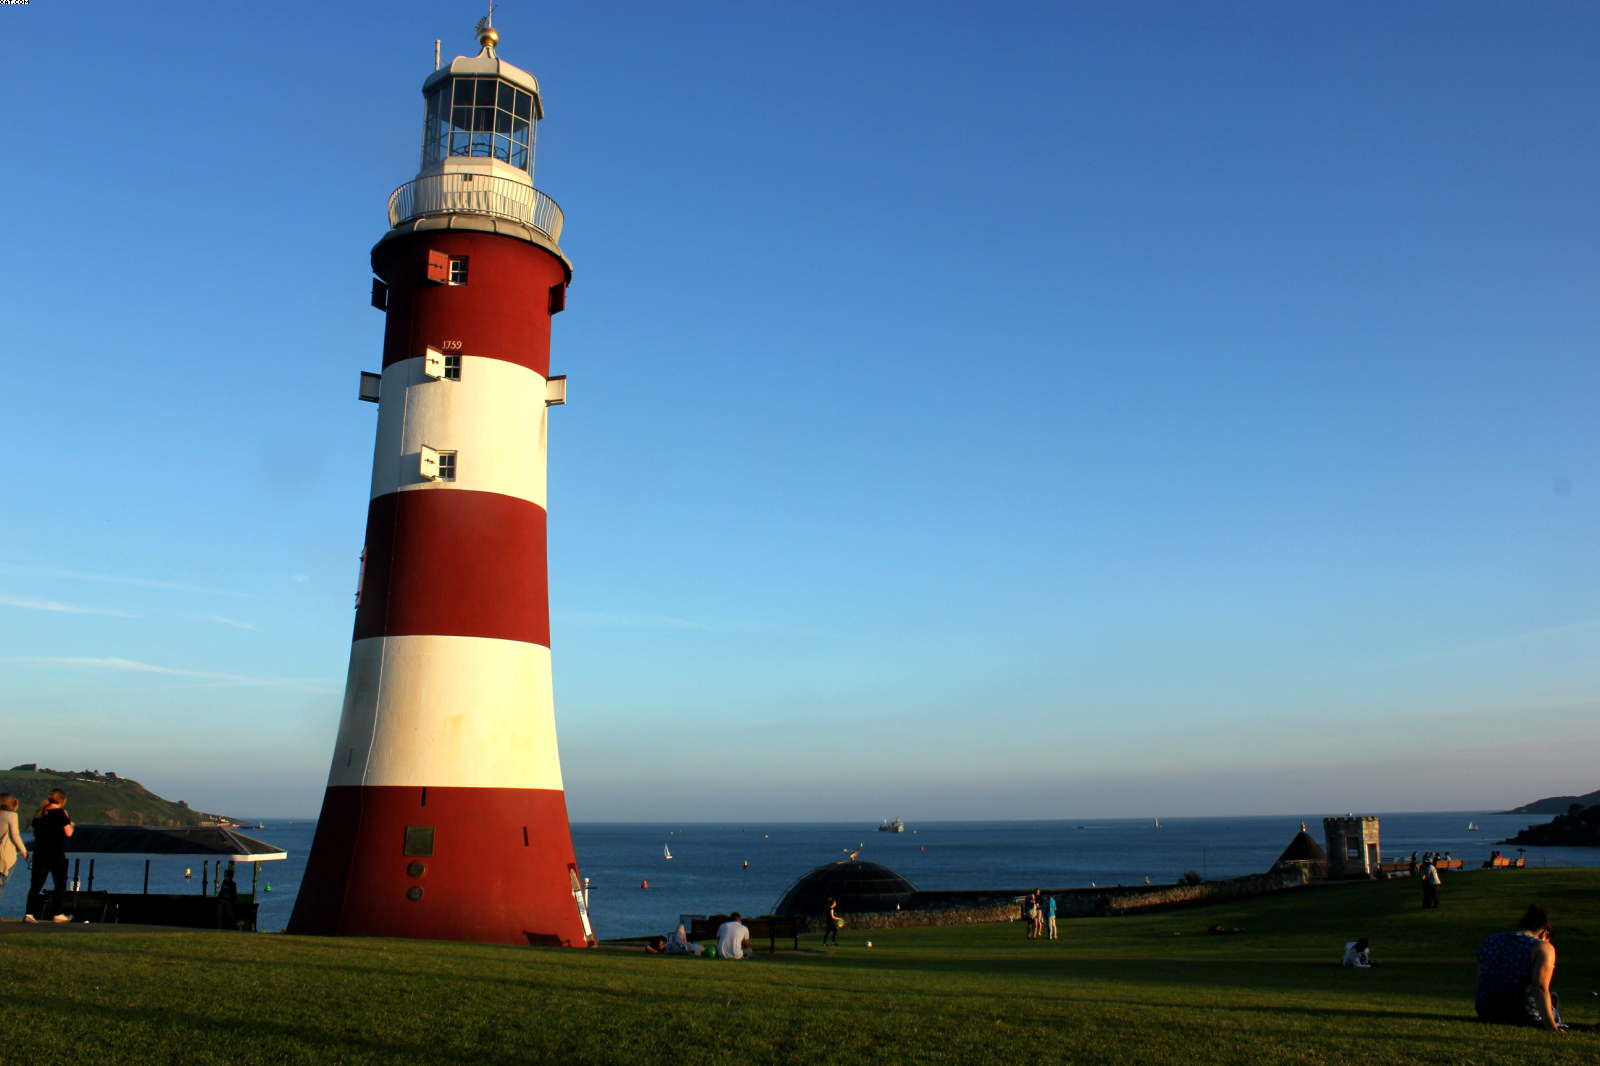 Smeatons Lighthouse on Plymouth Hoe overlooking Plymouth Sound